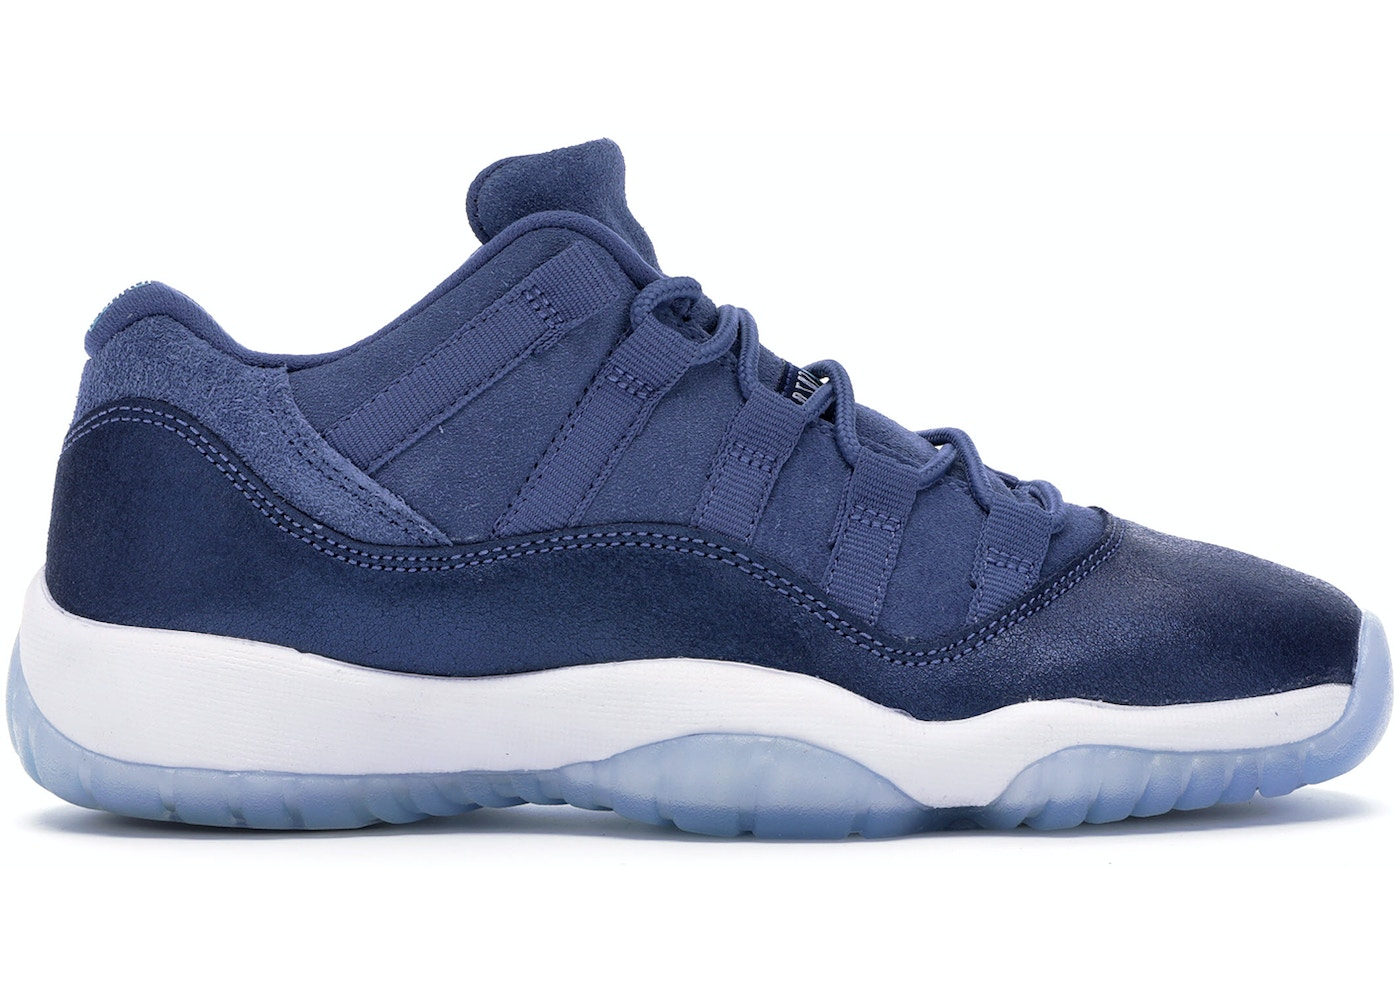 8935aa854abb Jordan 11 Retro Low Blue Moon (GS) - 580521-408